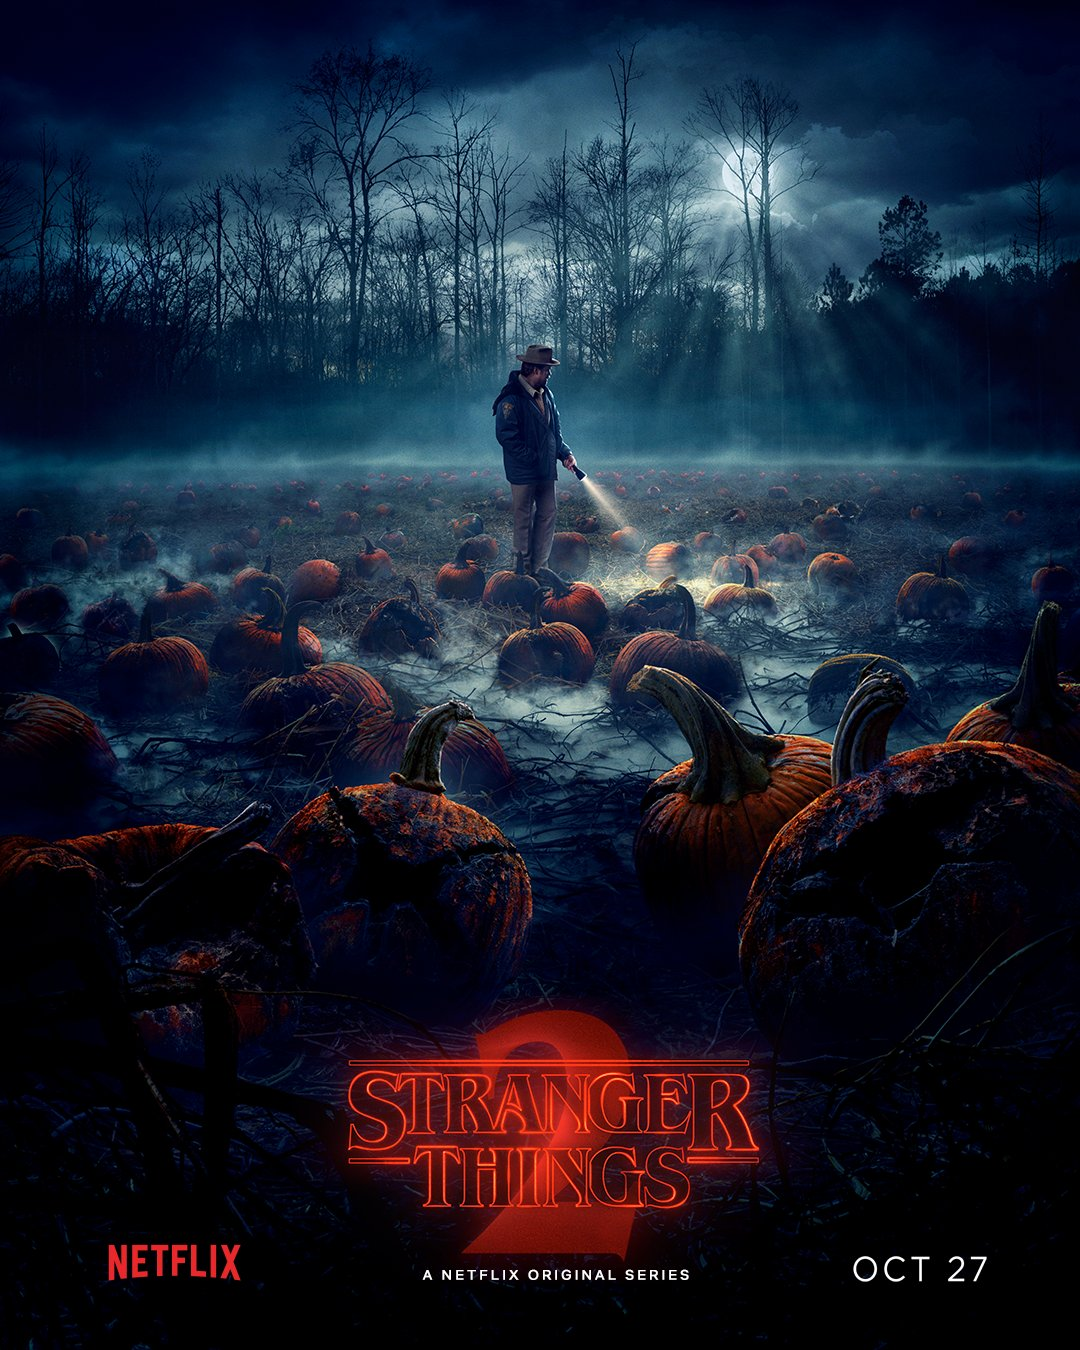 Stranger Things                 - Page 3 DLDfSZnUQAAzm2_